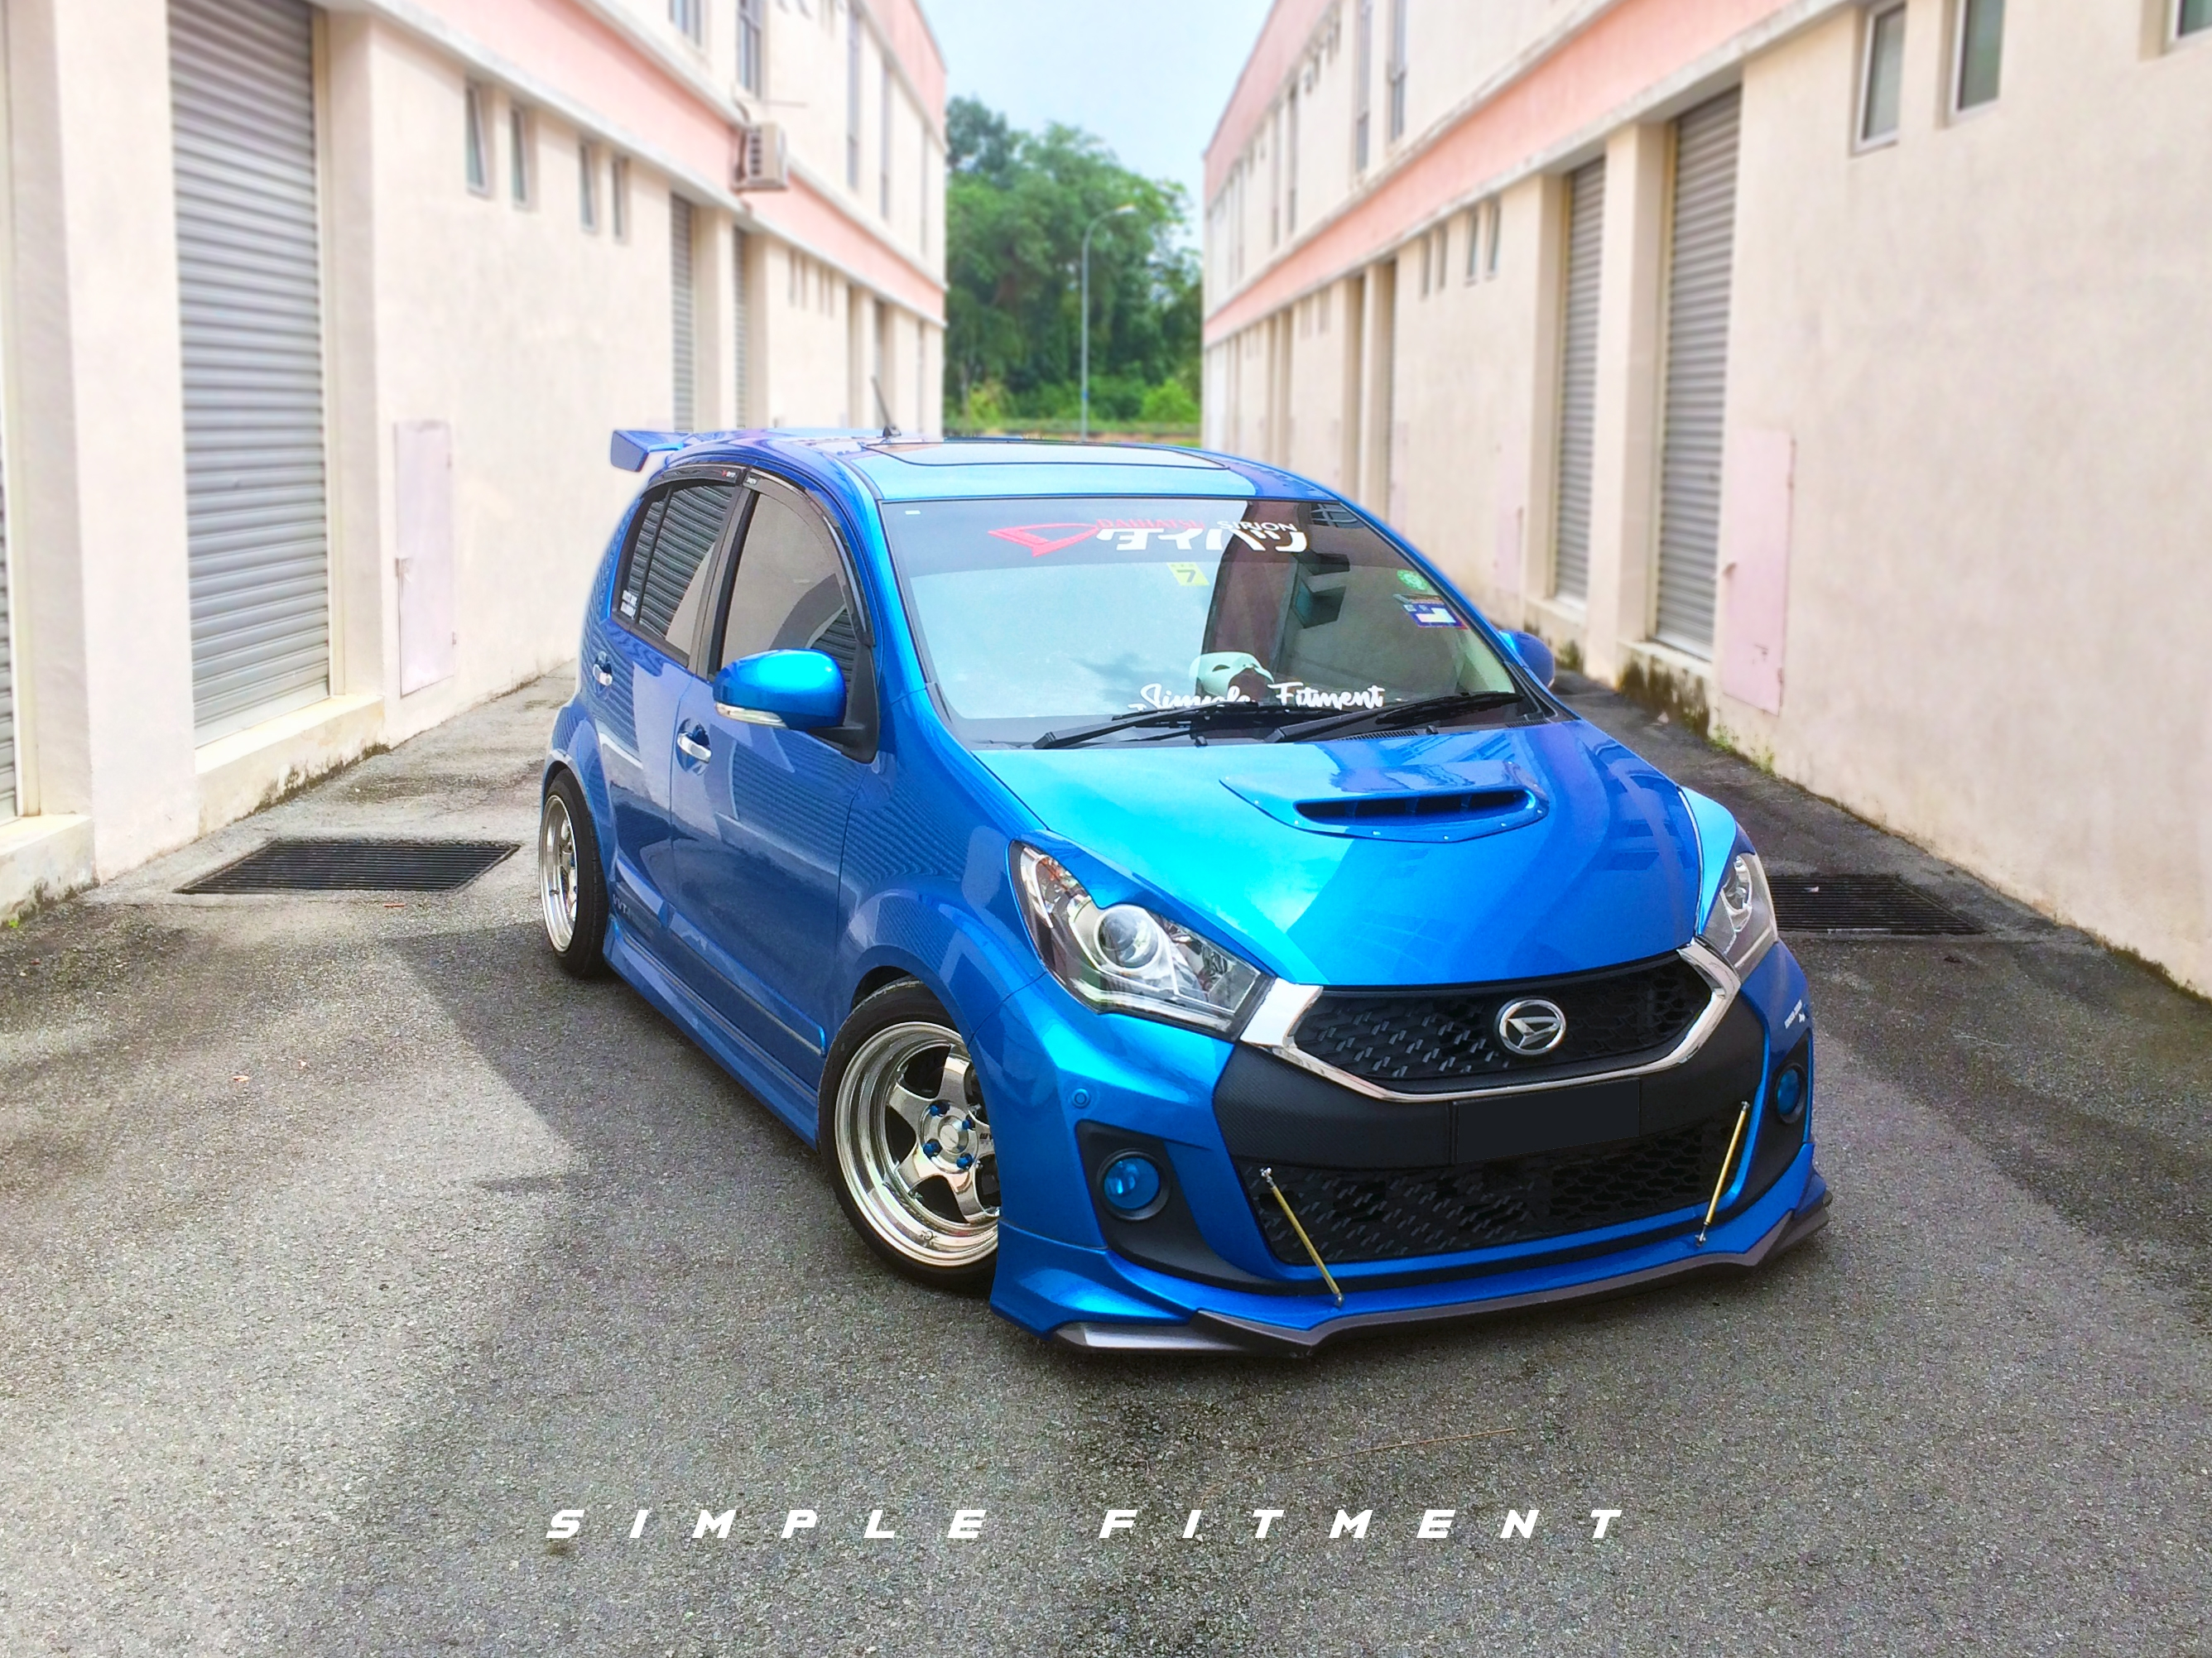 What is the car body kit for?